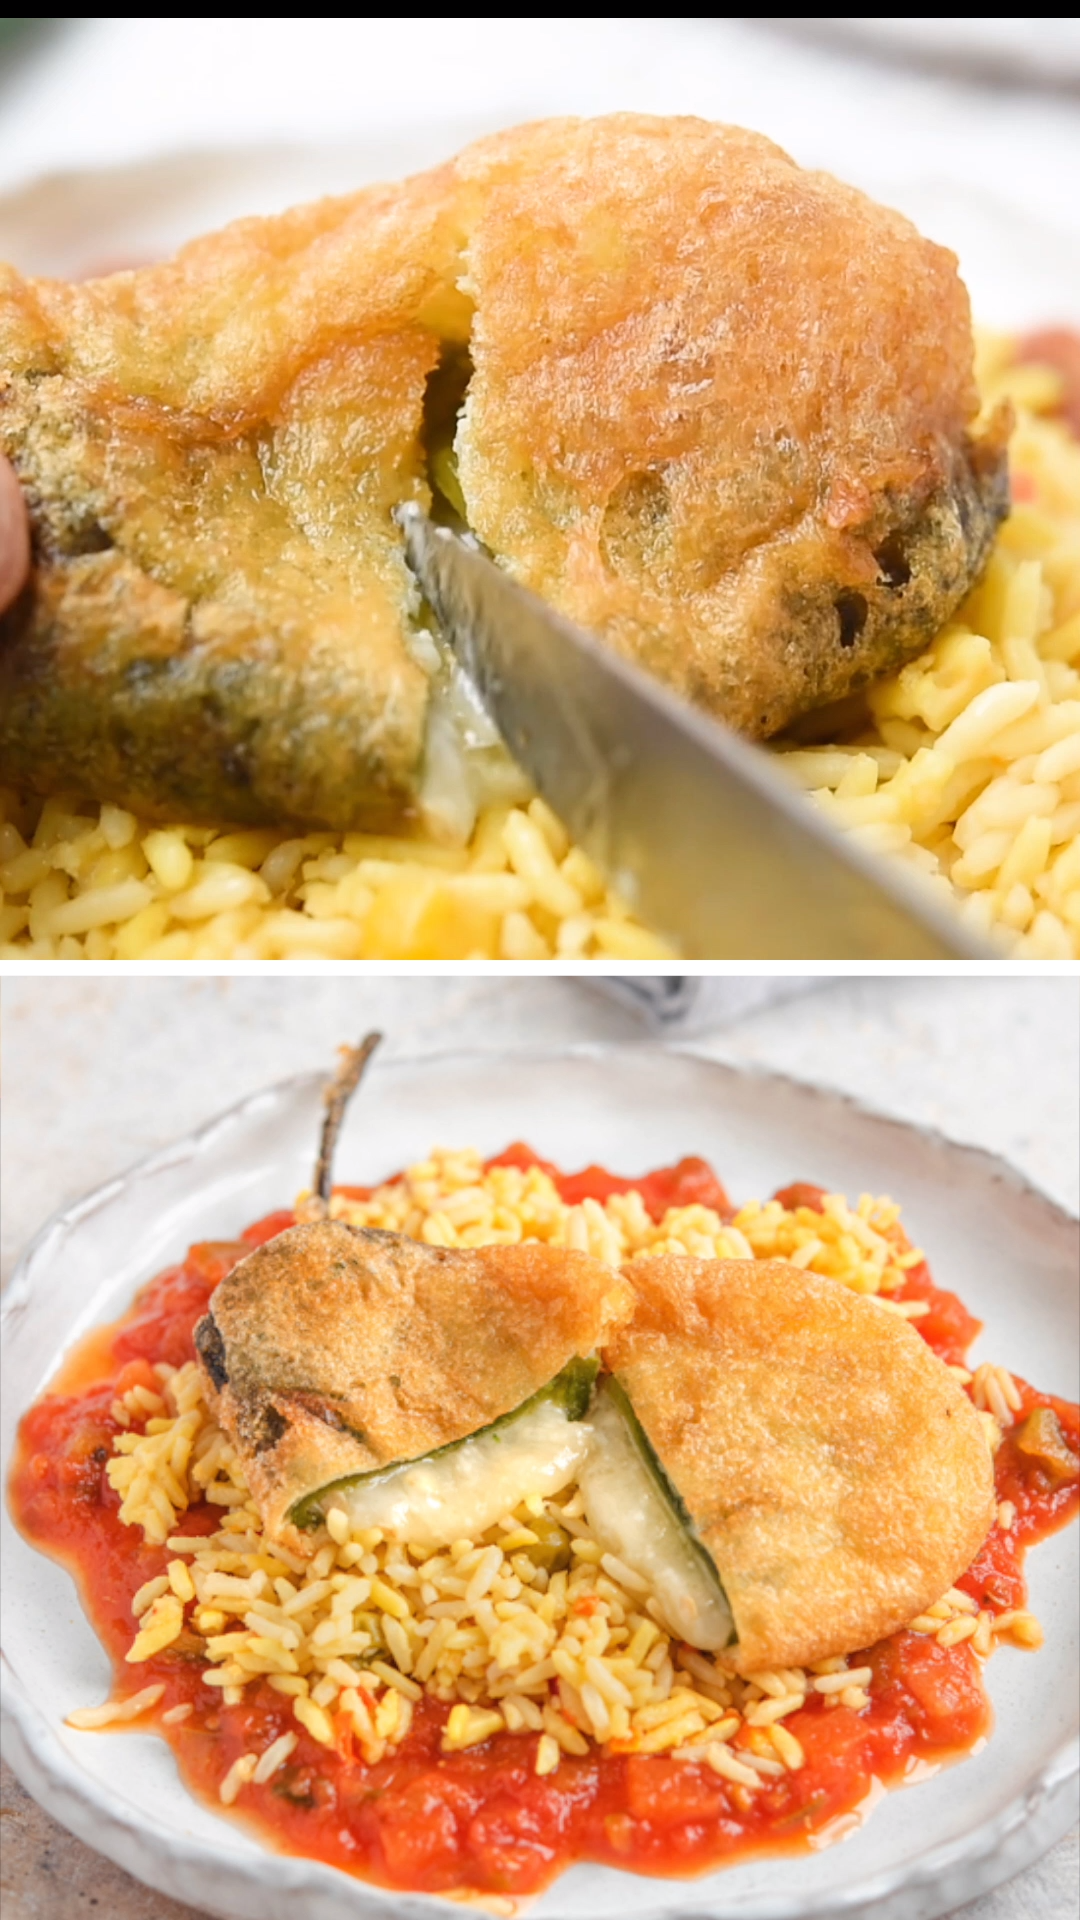 Mexican Chile Rellenos